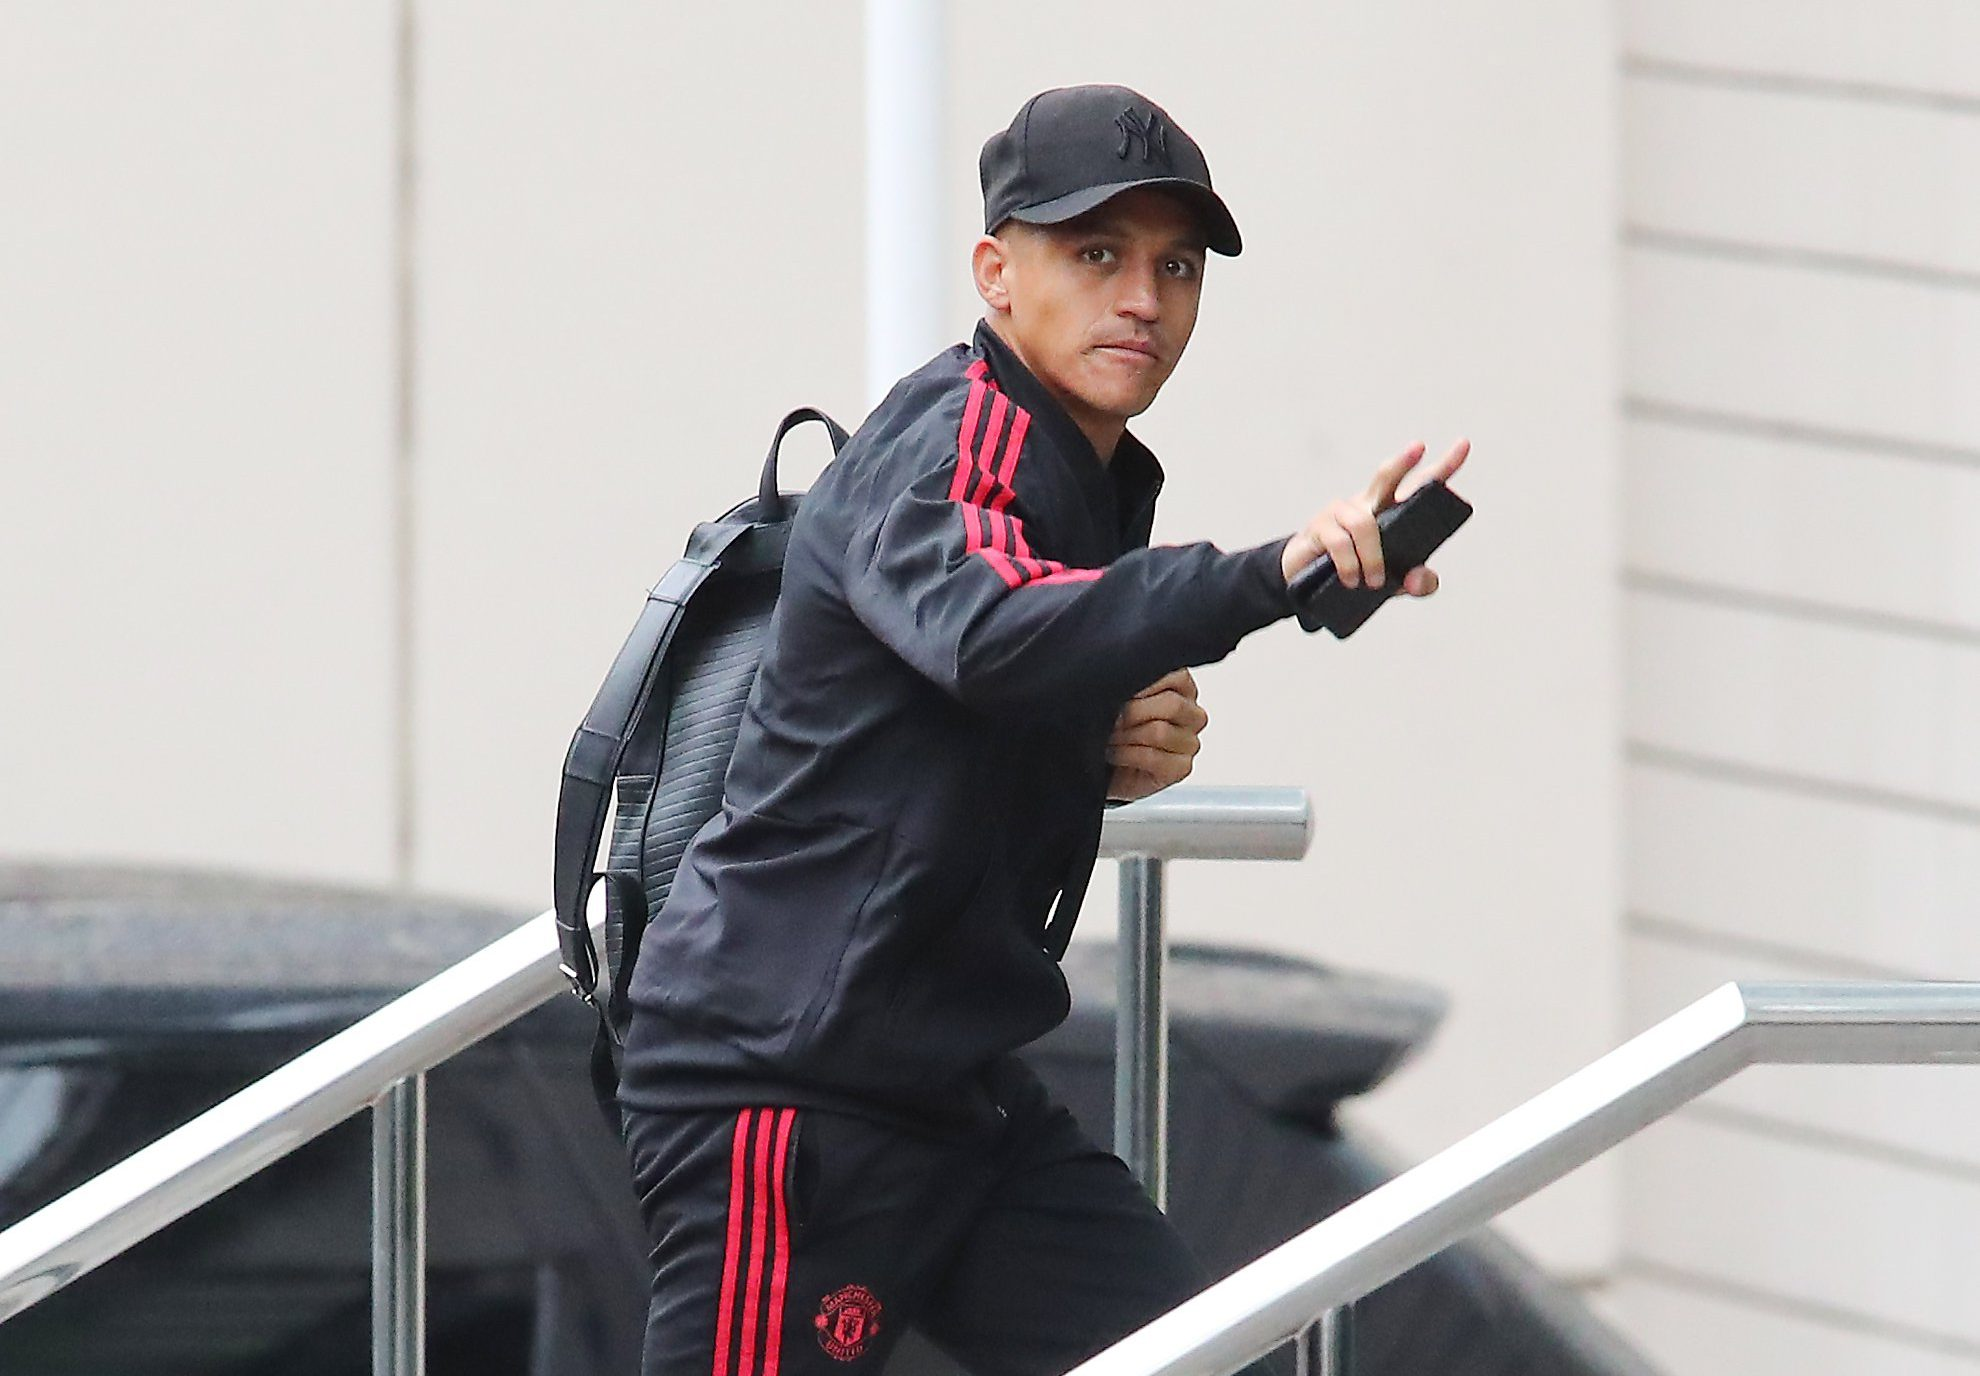 27.8.18?????? The Manchester United team arrive at The Lowry Hotel on Bank Holiday Monday morning to prepare for their Premier League match with Spurs on Monday night?????? Alexis Sanchez.